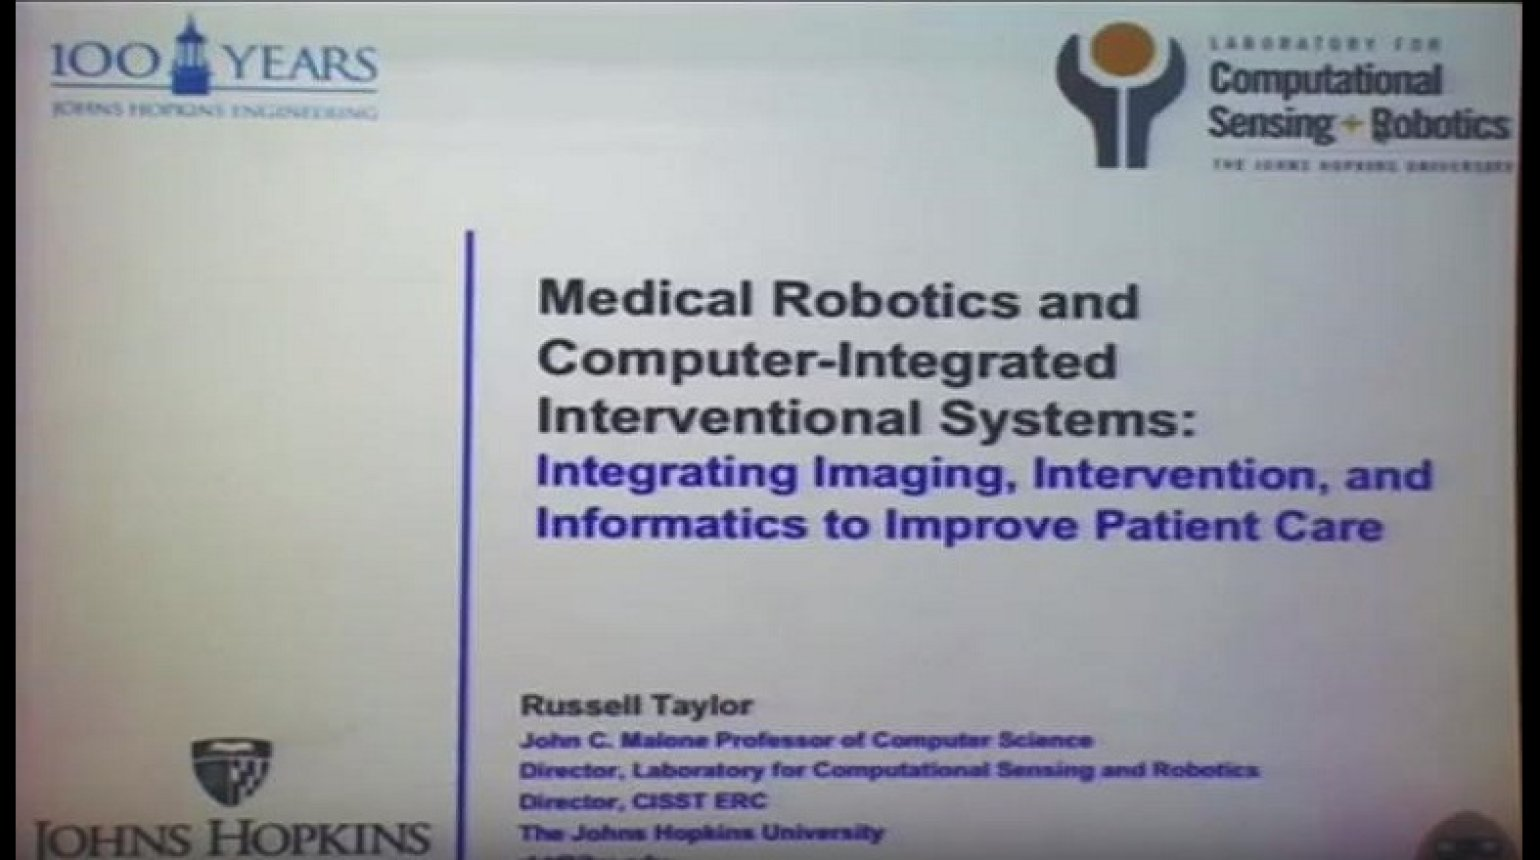 Medical Robotics and Computer Integrated Interventional Systems - Russell Taylor